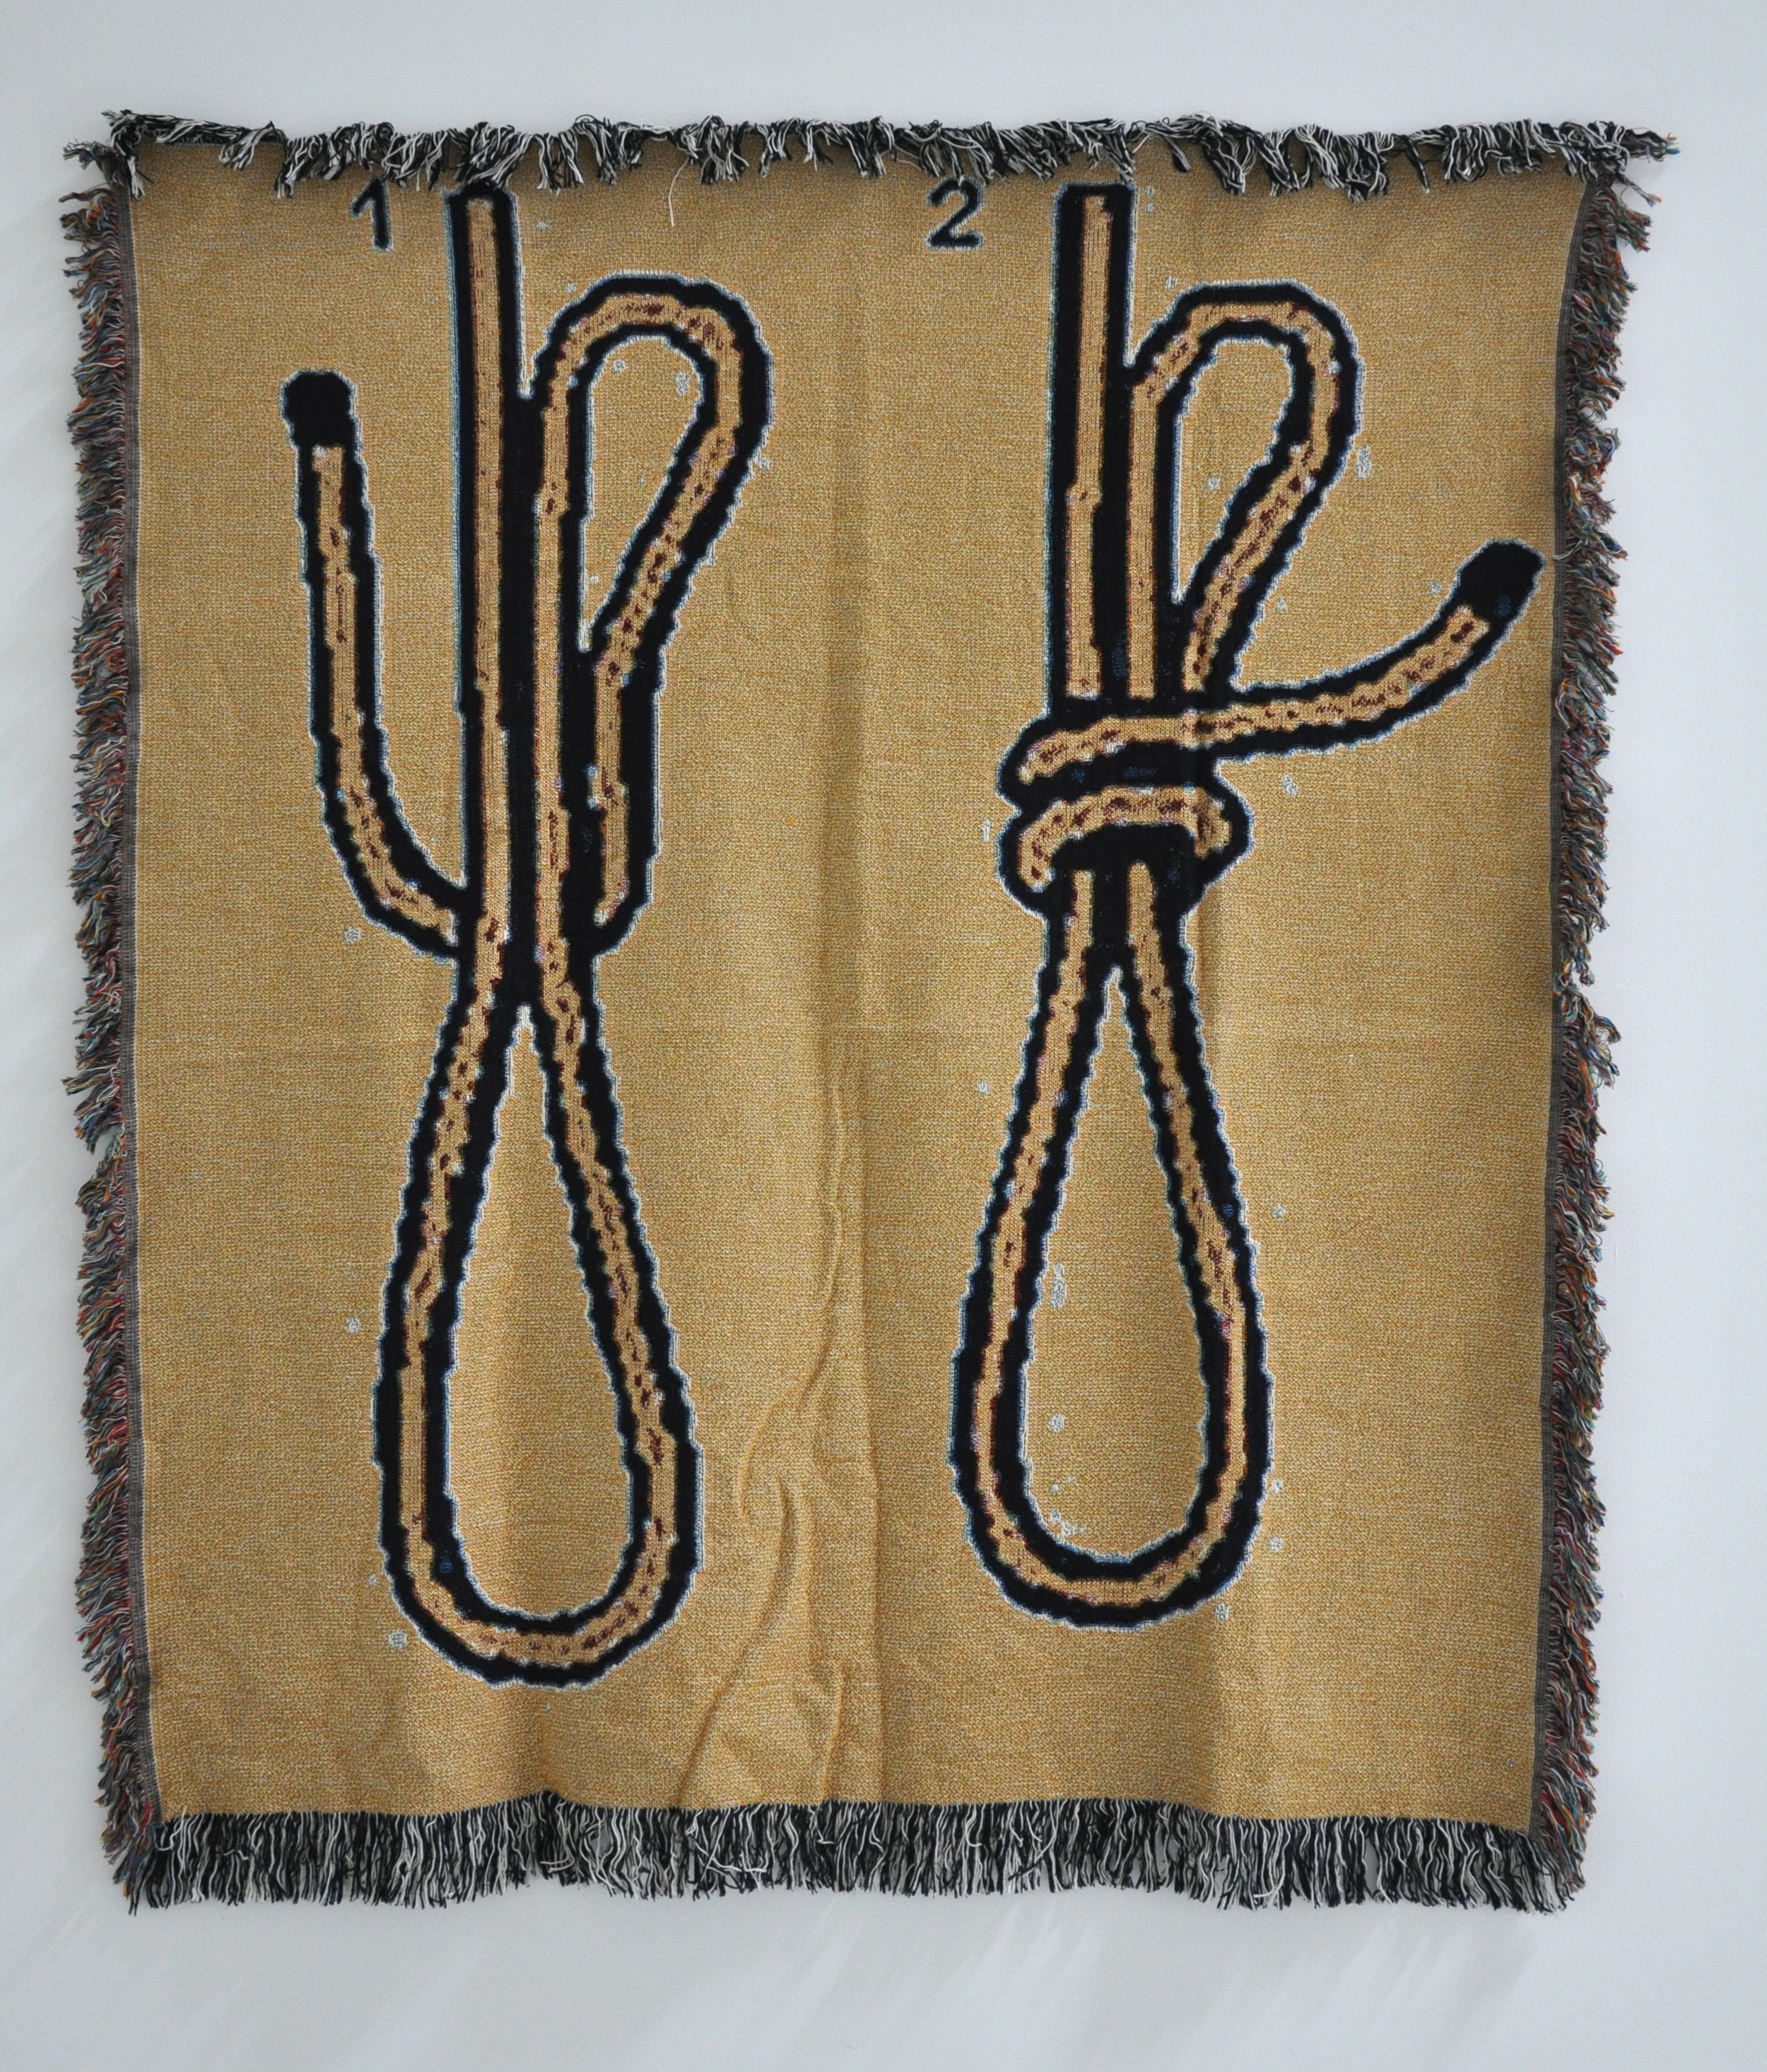 "Tosha Stimage, ""How to Tie a Noose Step 1 & 2"", woven blanket, 62 x 53 in, 2018"